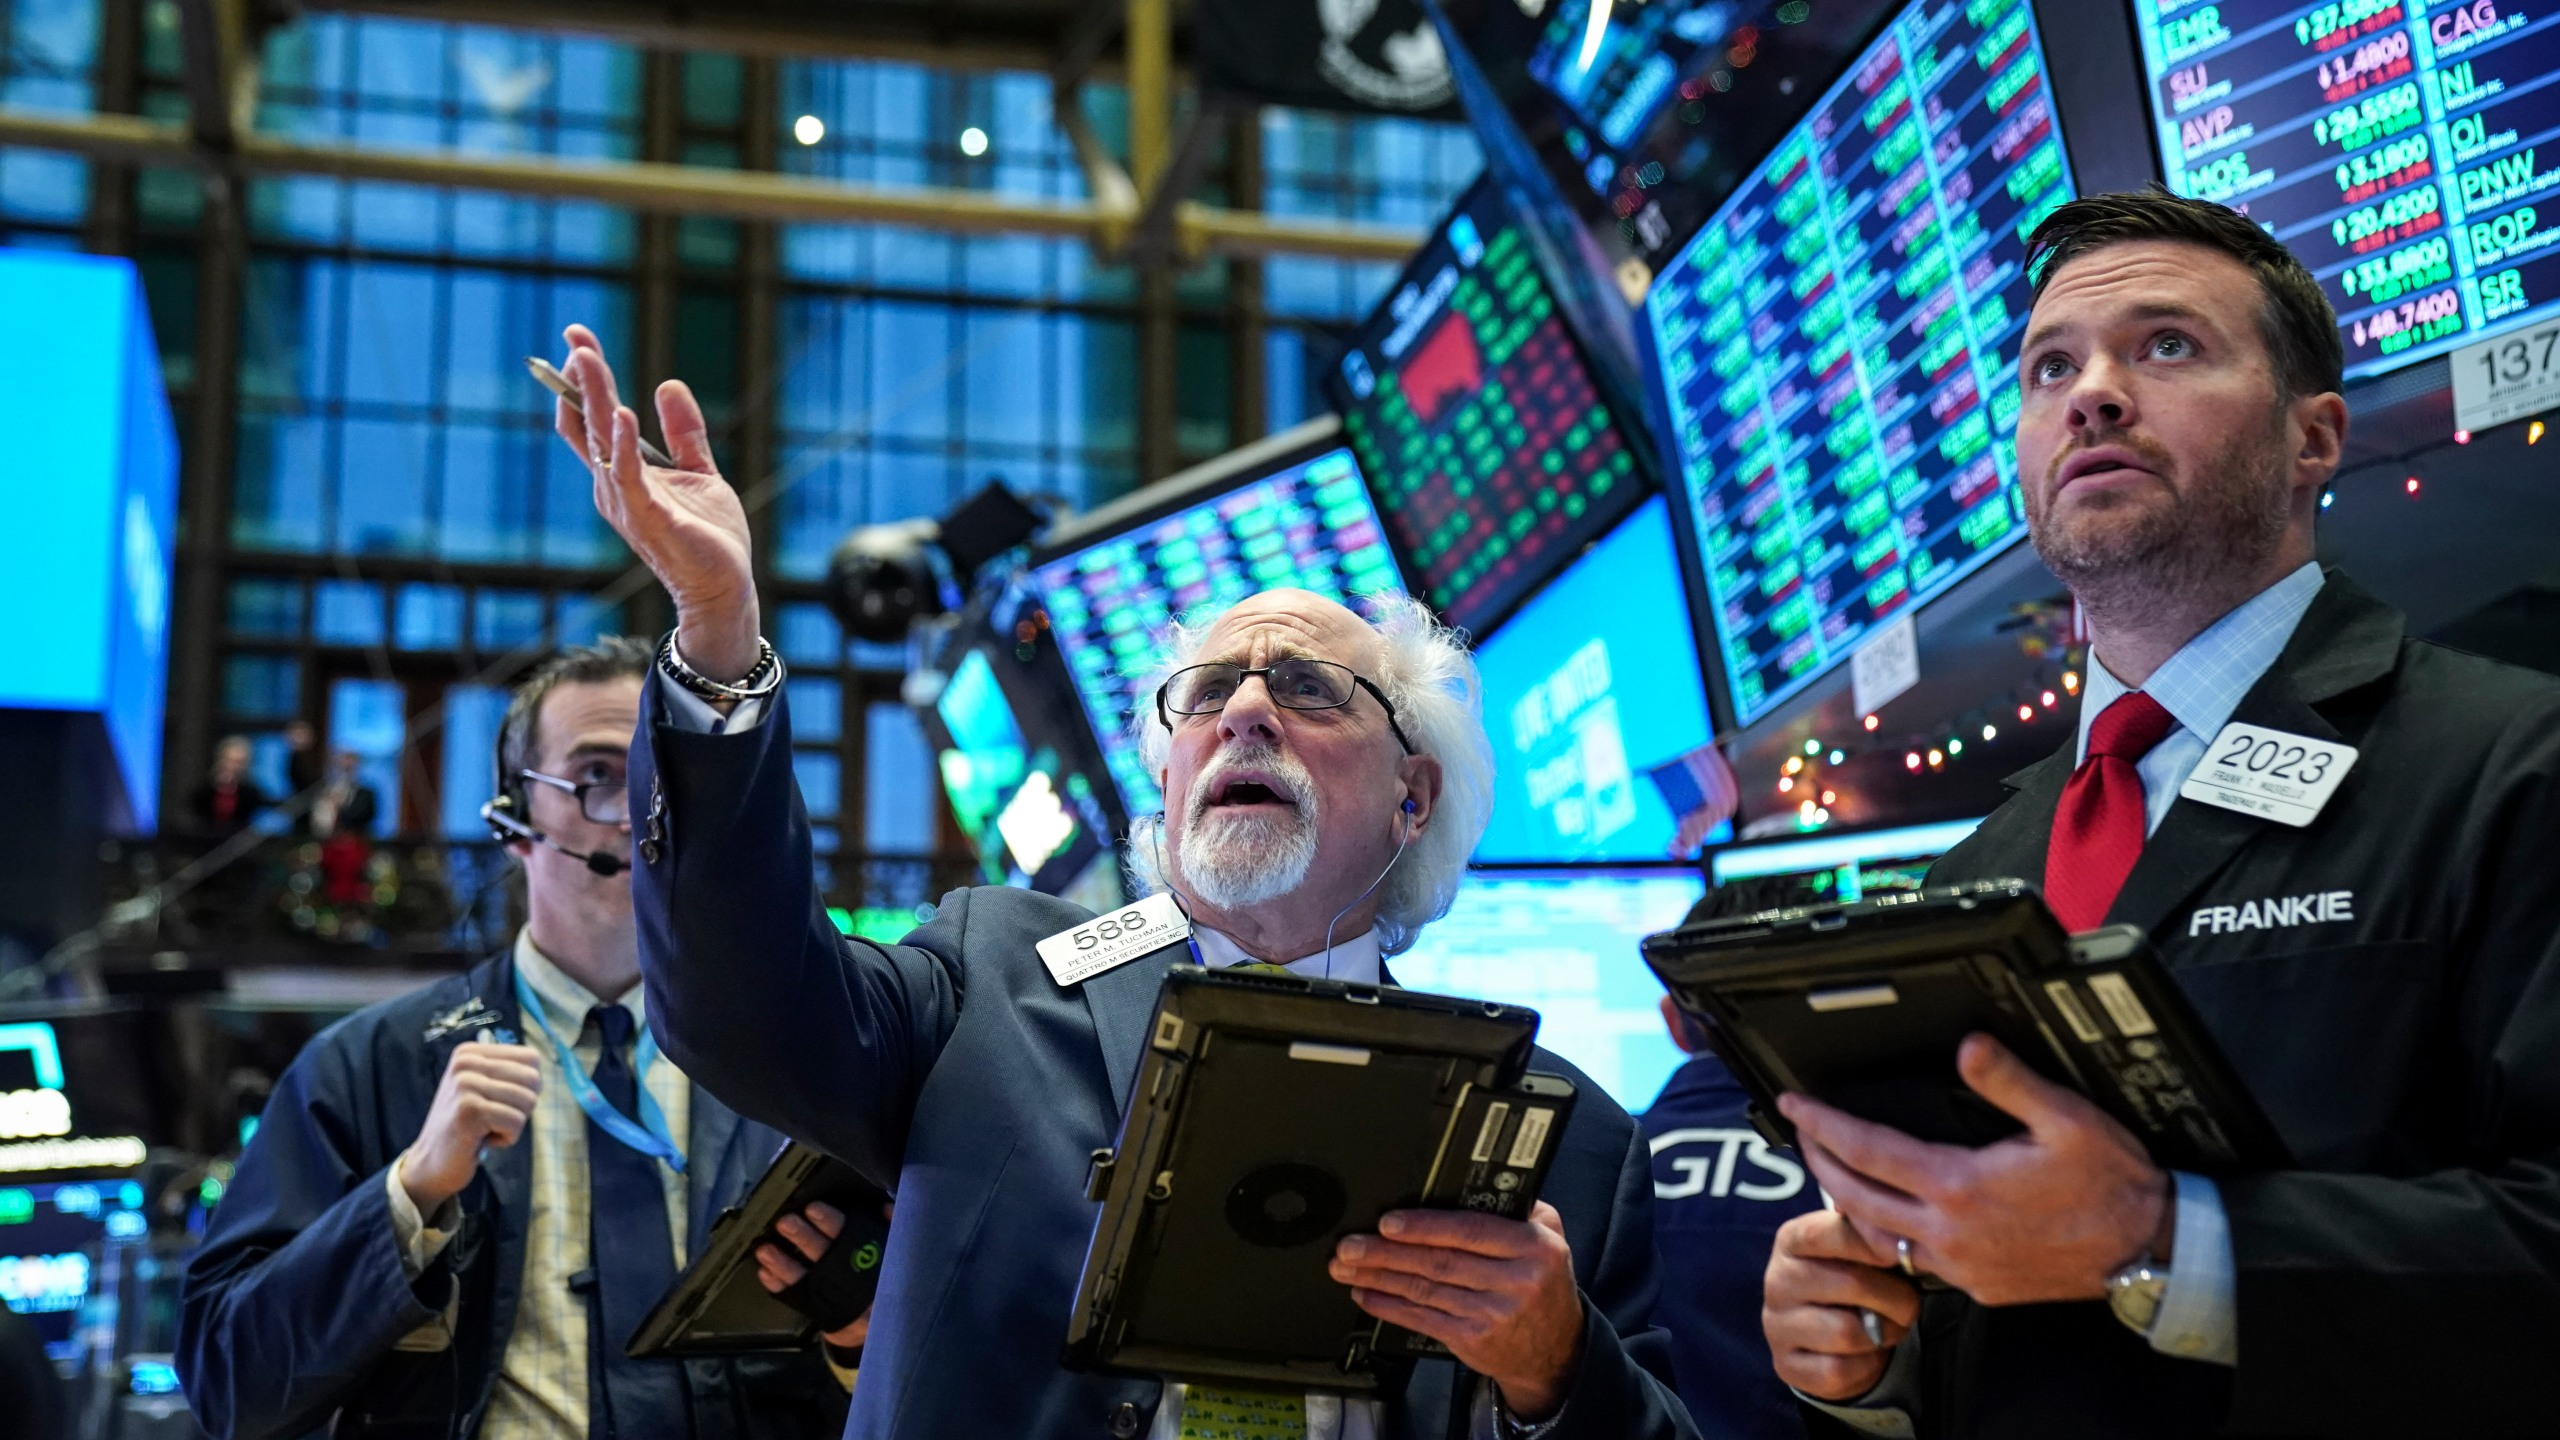 Traders and financial professionals work ahead of the closing bell on the floor of the New York Stock Exchange (NYSE) on Dec. 27, 2018, in New York City. (Credit: Drew Angerer/Getty Images)